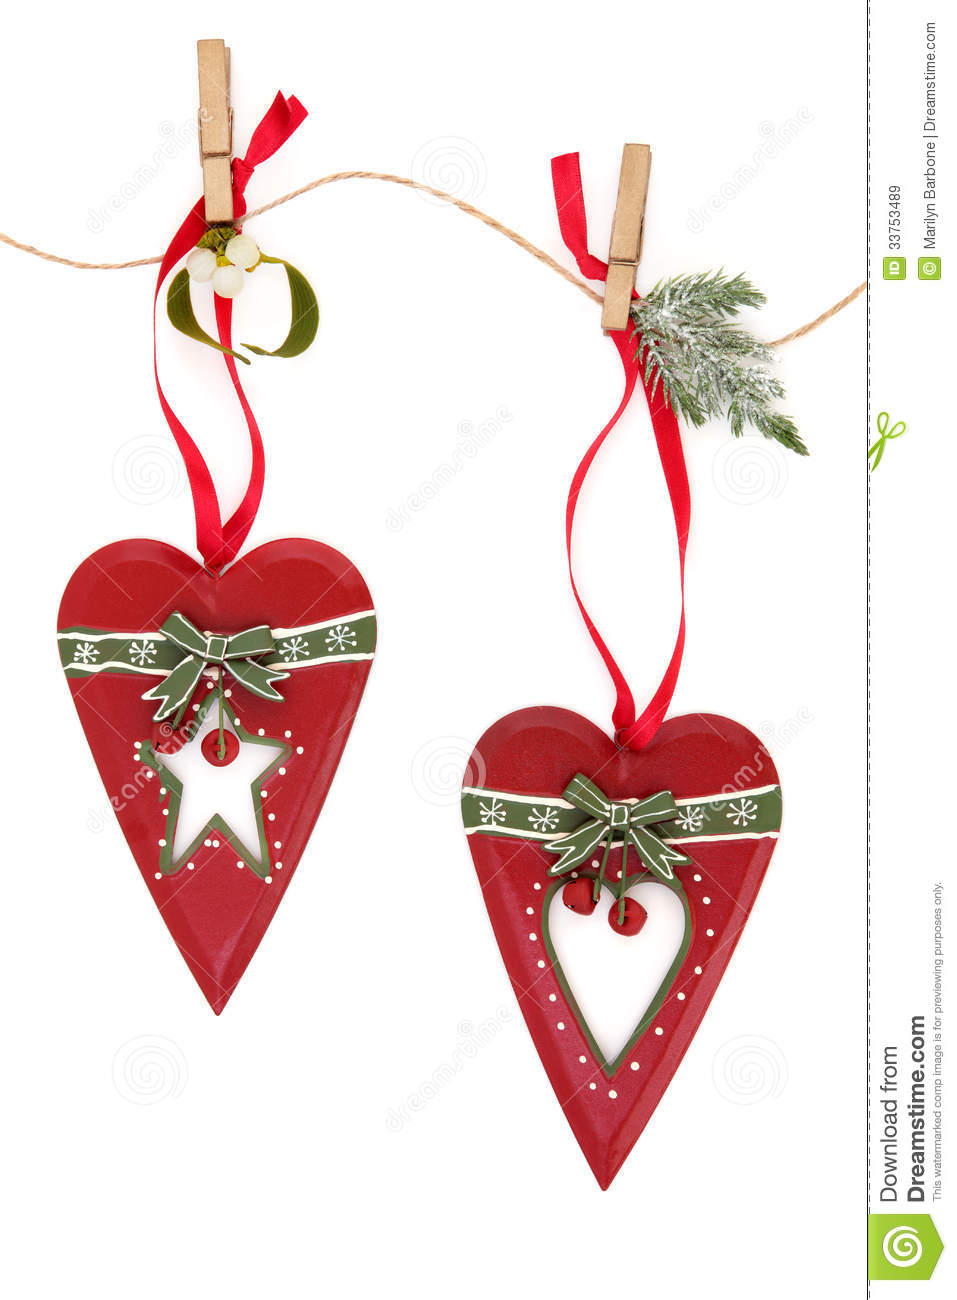 Retro christmas decorations stock image